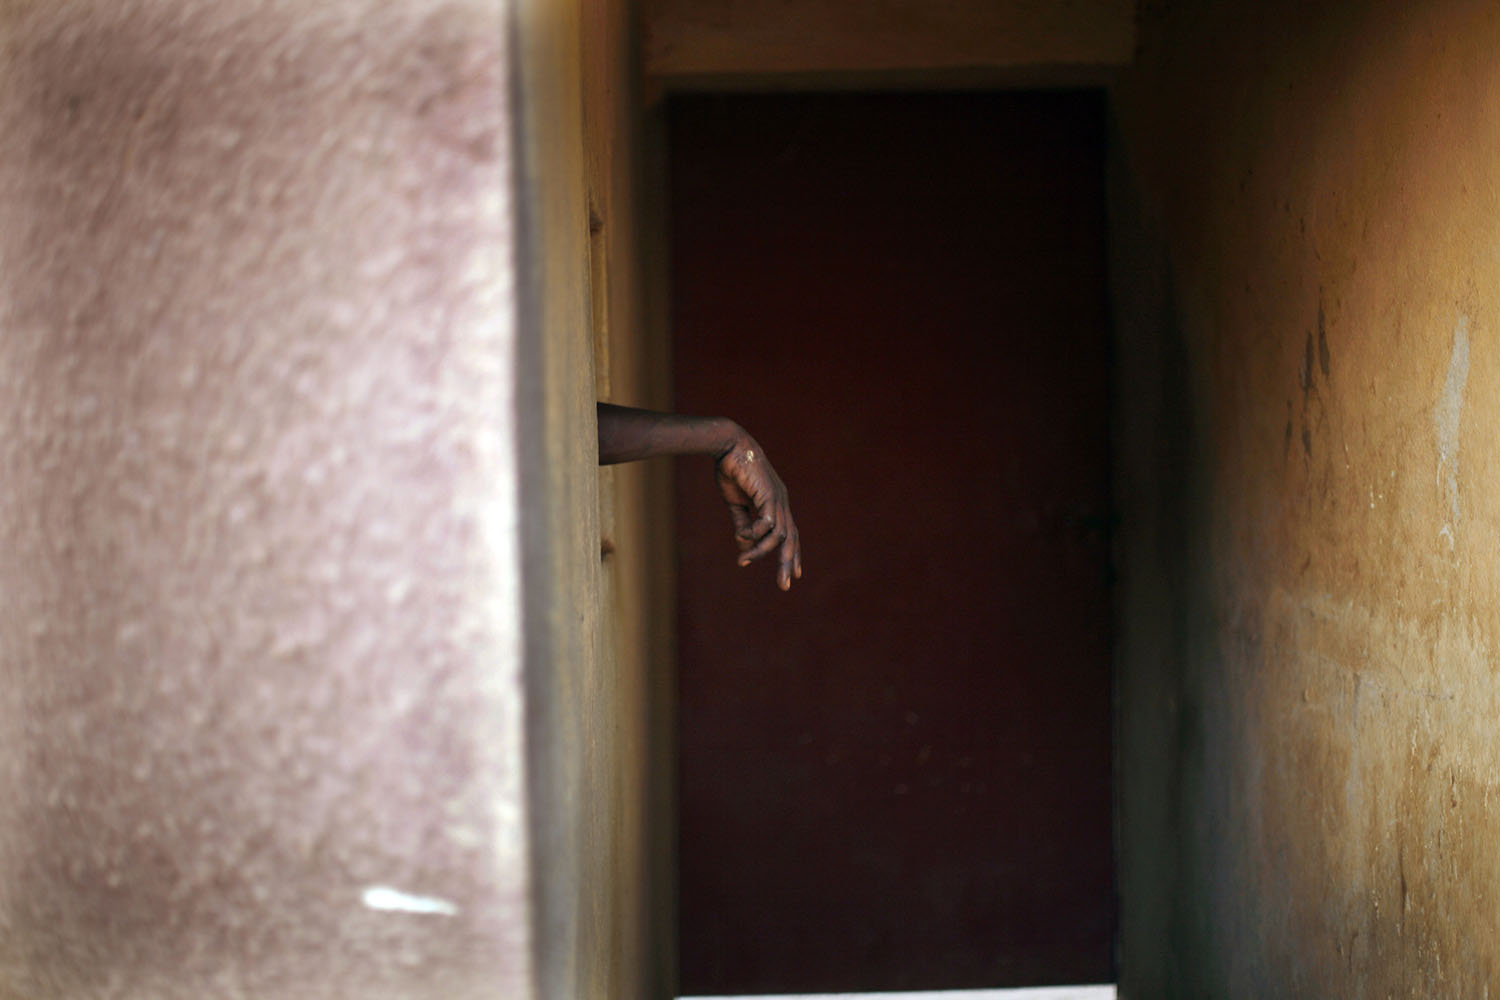 A suspected member of MUJAO sticks his hand out of the cell where suspected  fighters are held in Gao, Feb. 11 2013.